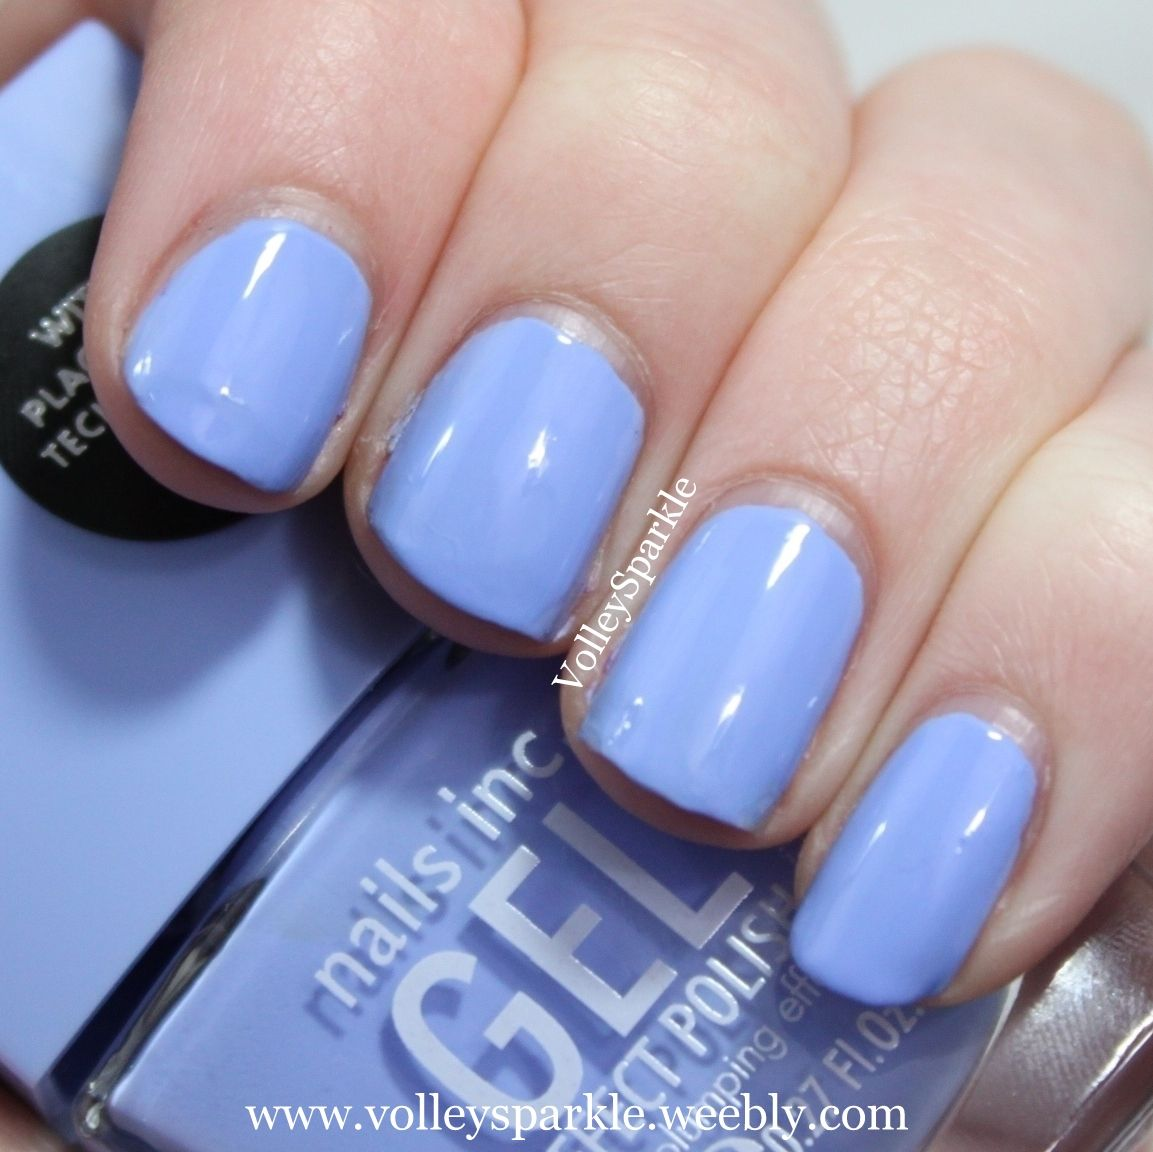 Nails inc gel nail colors and gel nail polish on pinterest - Nails Inc Regents Place Gel Effect Polish Find This Pin And More On Nail Polishes